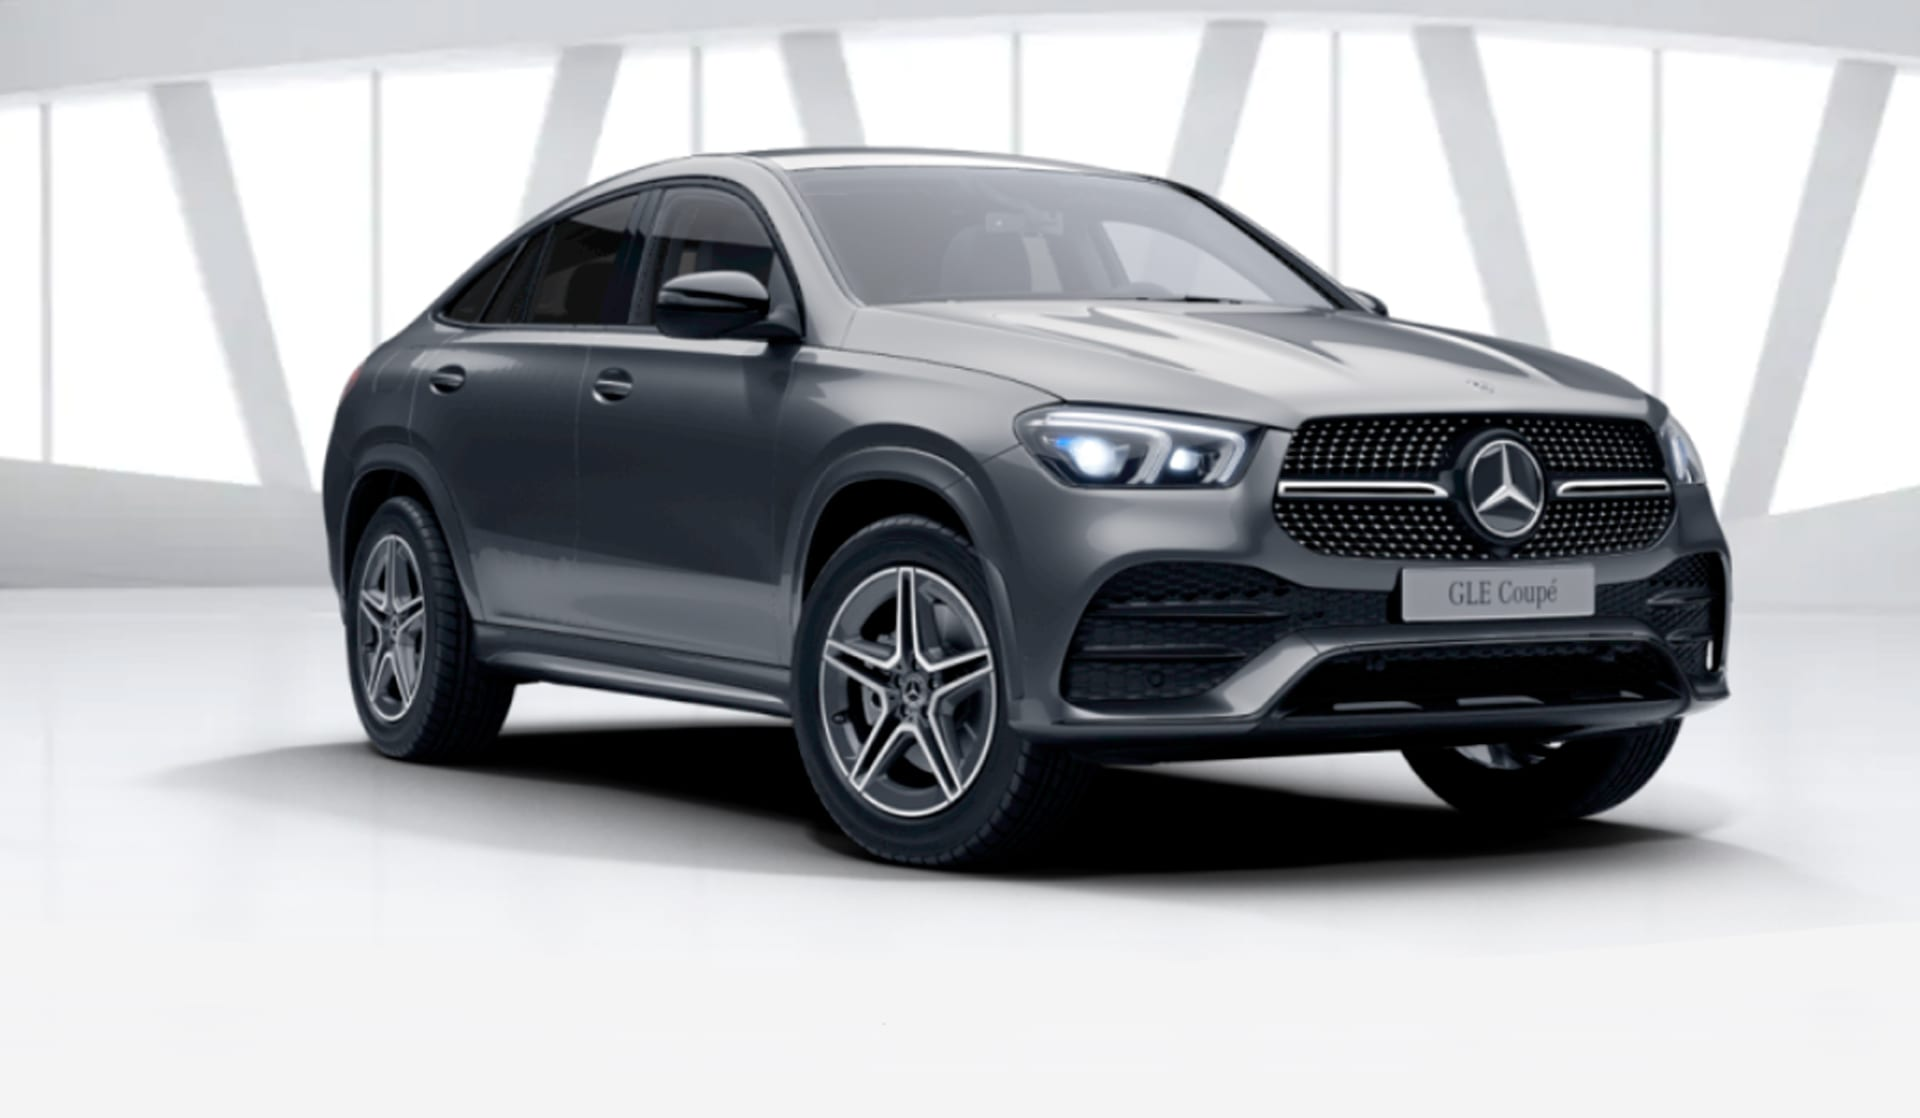 Mercedes-Benz GLE Coupe 0152600556 (Гибрид)